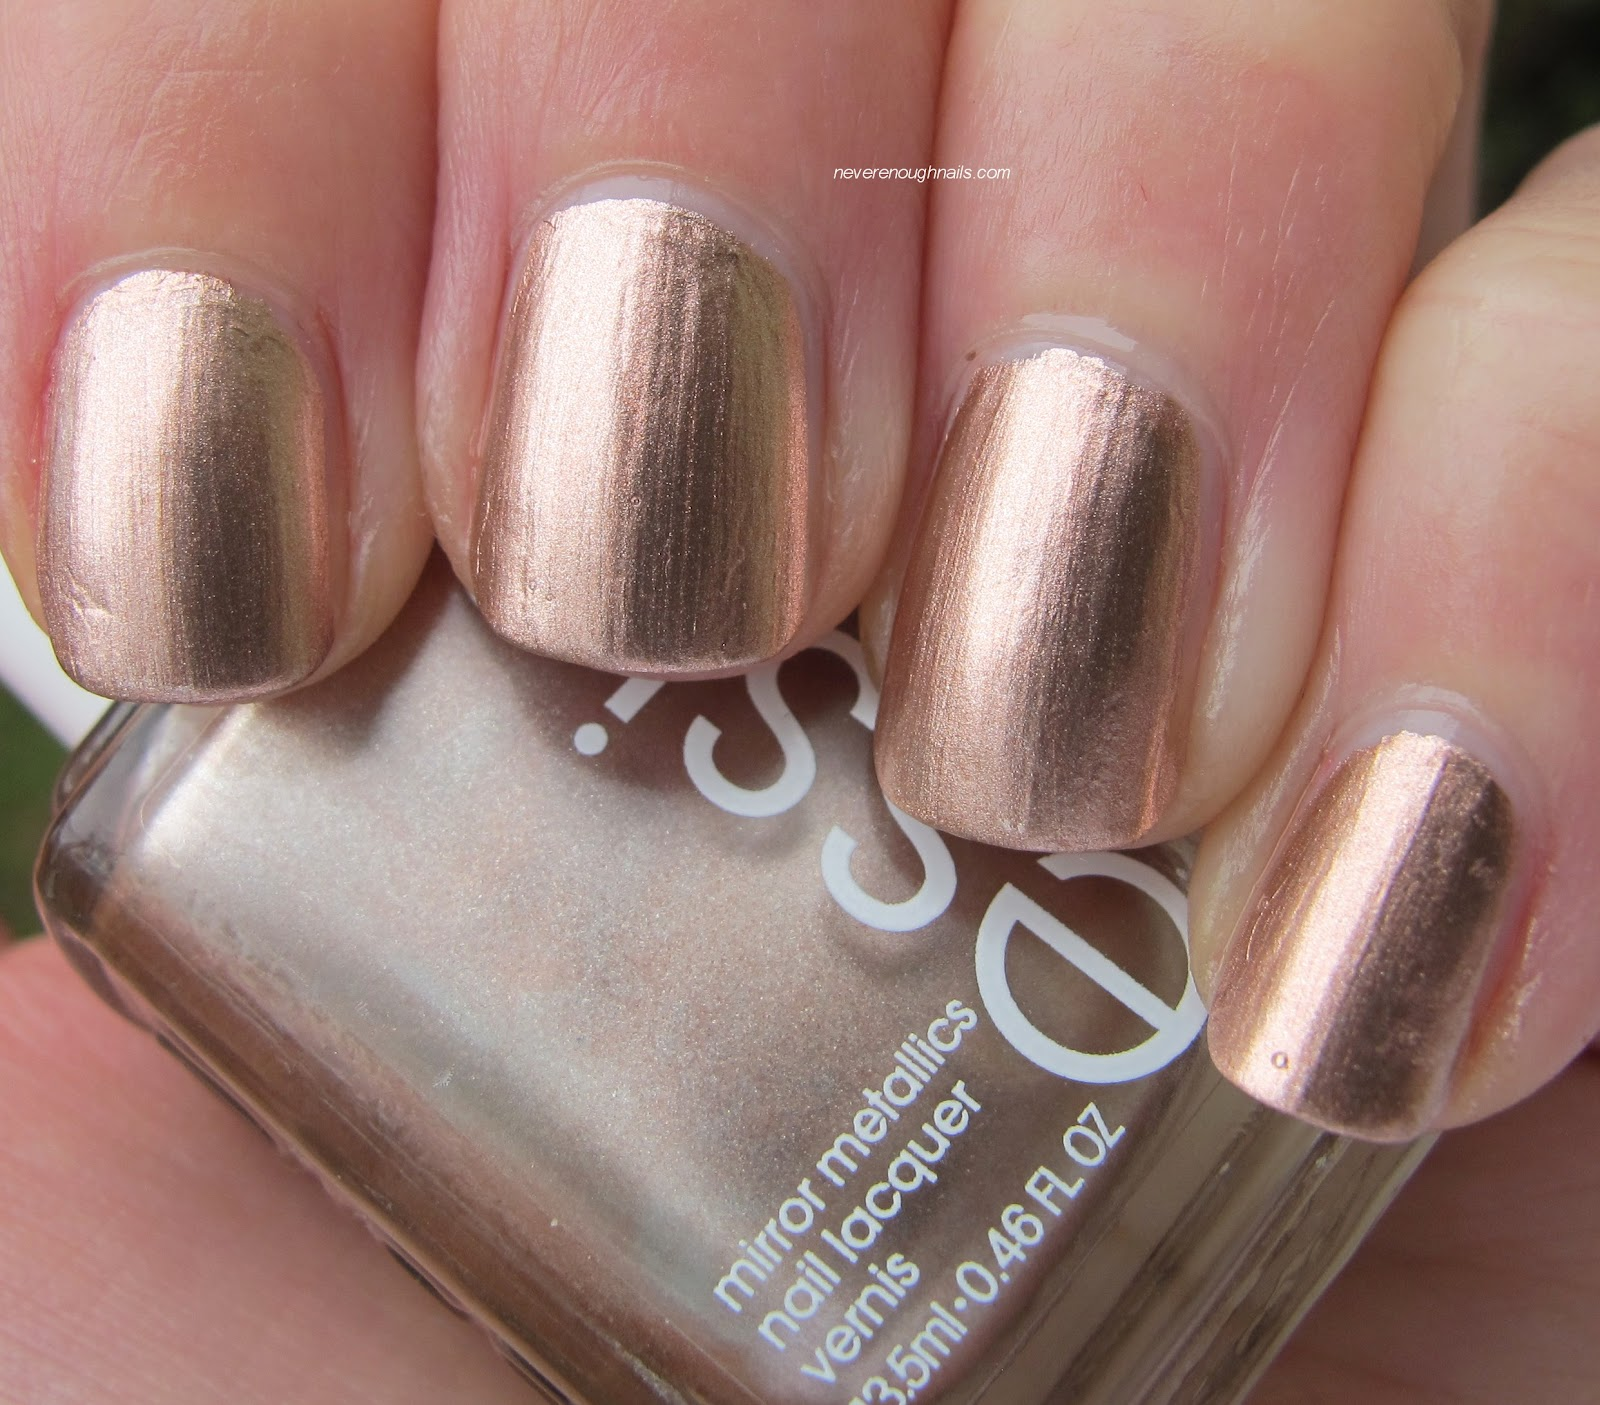 Never Enough Nails: Essie Penny Talk